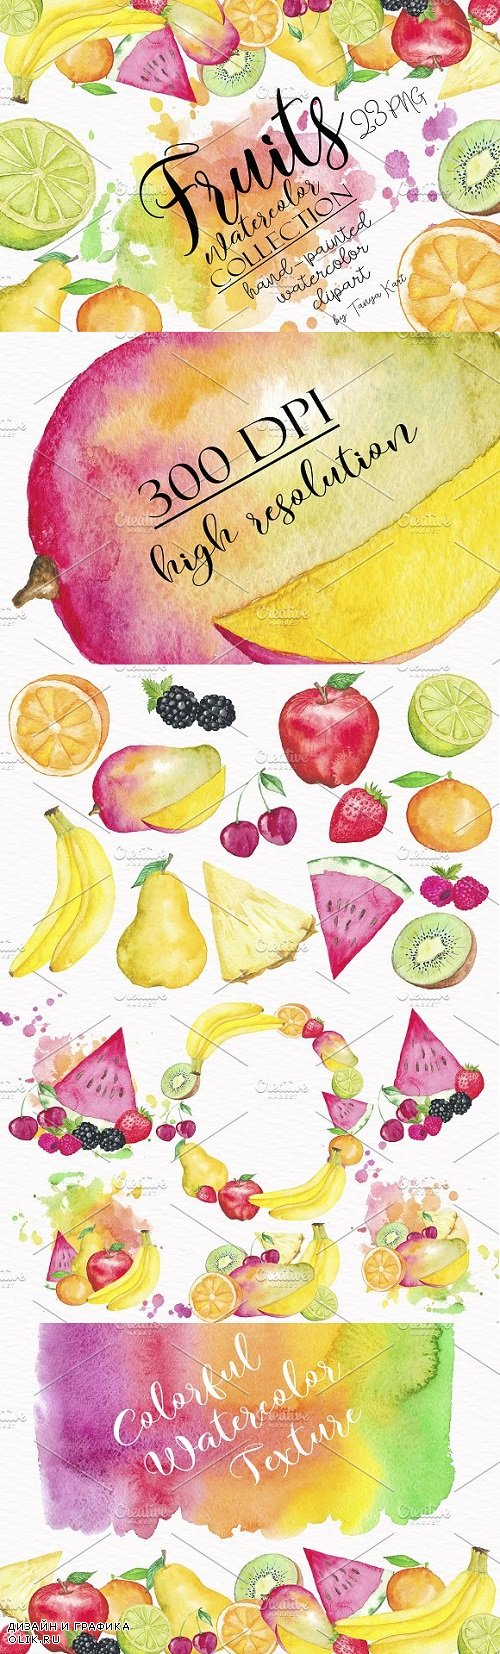 Fruit Watercolor Collection - 1136341